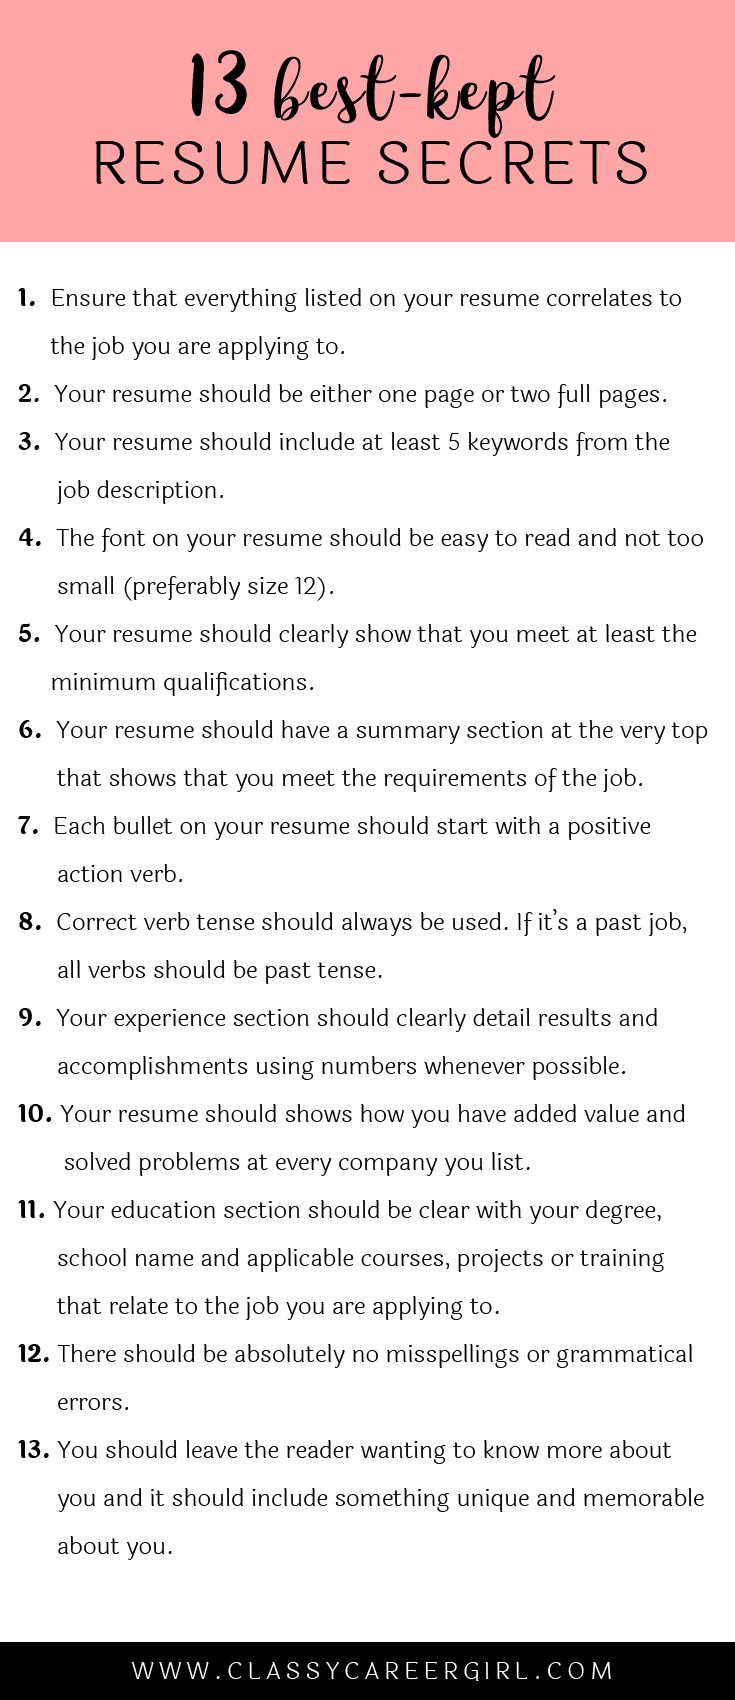 Opposenewapstandardsus  Inspiring  Ideas About Resume On Pinterest  Cv Format Resume Cv And  With Great Some Hiring Managers Will Toss Your Resume Out If You Dont Know These  With Charming Resume Writing Examples Also Teacher Skills Resume In Addition Resume Dos And Donts And Restaurant Resumes As Well As Resume Nursing Additionally Resume Work Experience Examples From Pinterestcom With Opposenewapstandardsus  Great  Ideas About Resume On Pinterest  Cv Format Resume Cv And  With Charming Some Hiring Managers Will Toss Your Resume Out If You Dont Know These  And Inspiring Resume Writing Examples Also Teacher Skills Resume In Addition Resume Dos And Donts From Pinterestcom